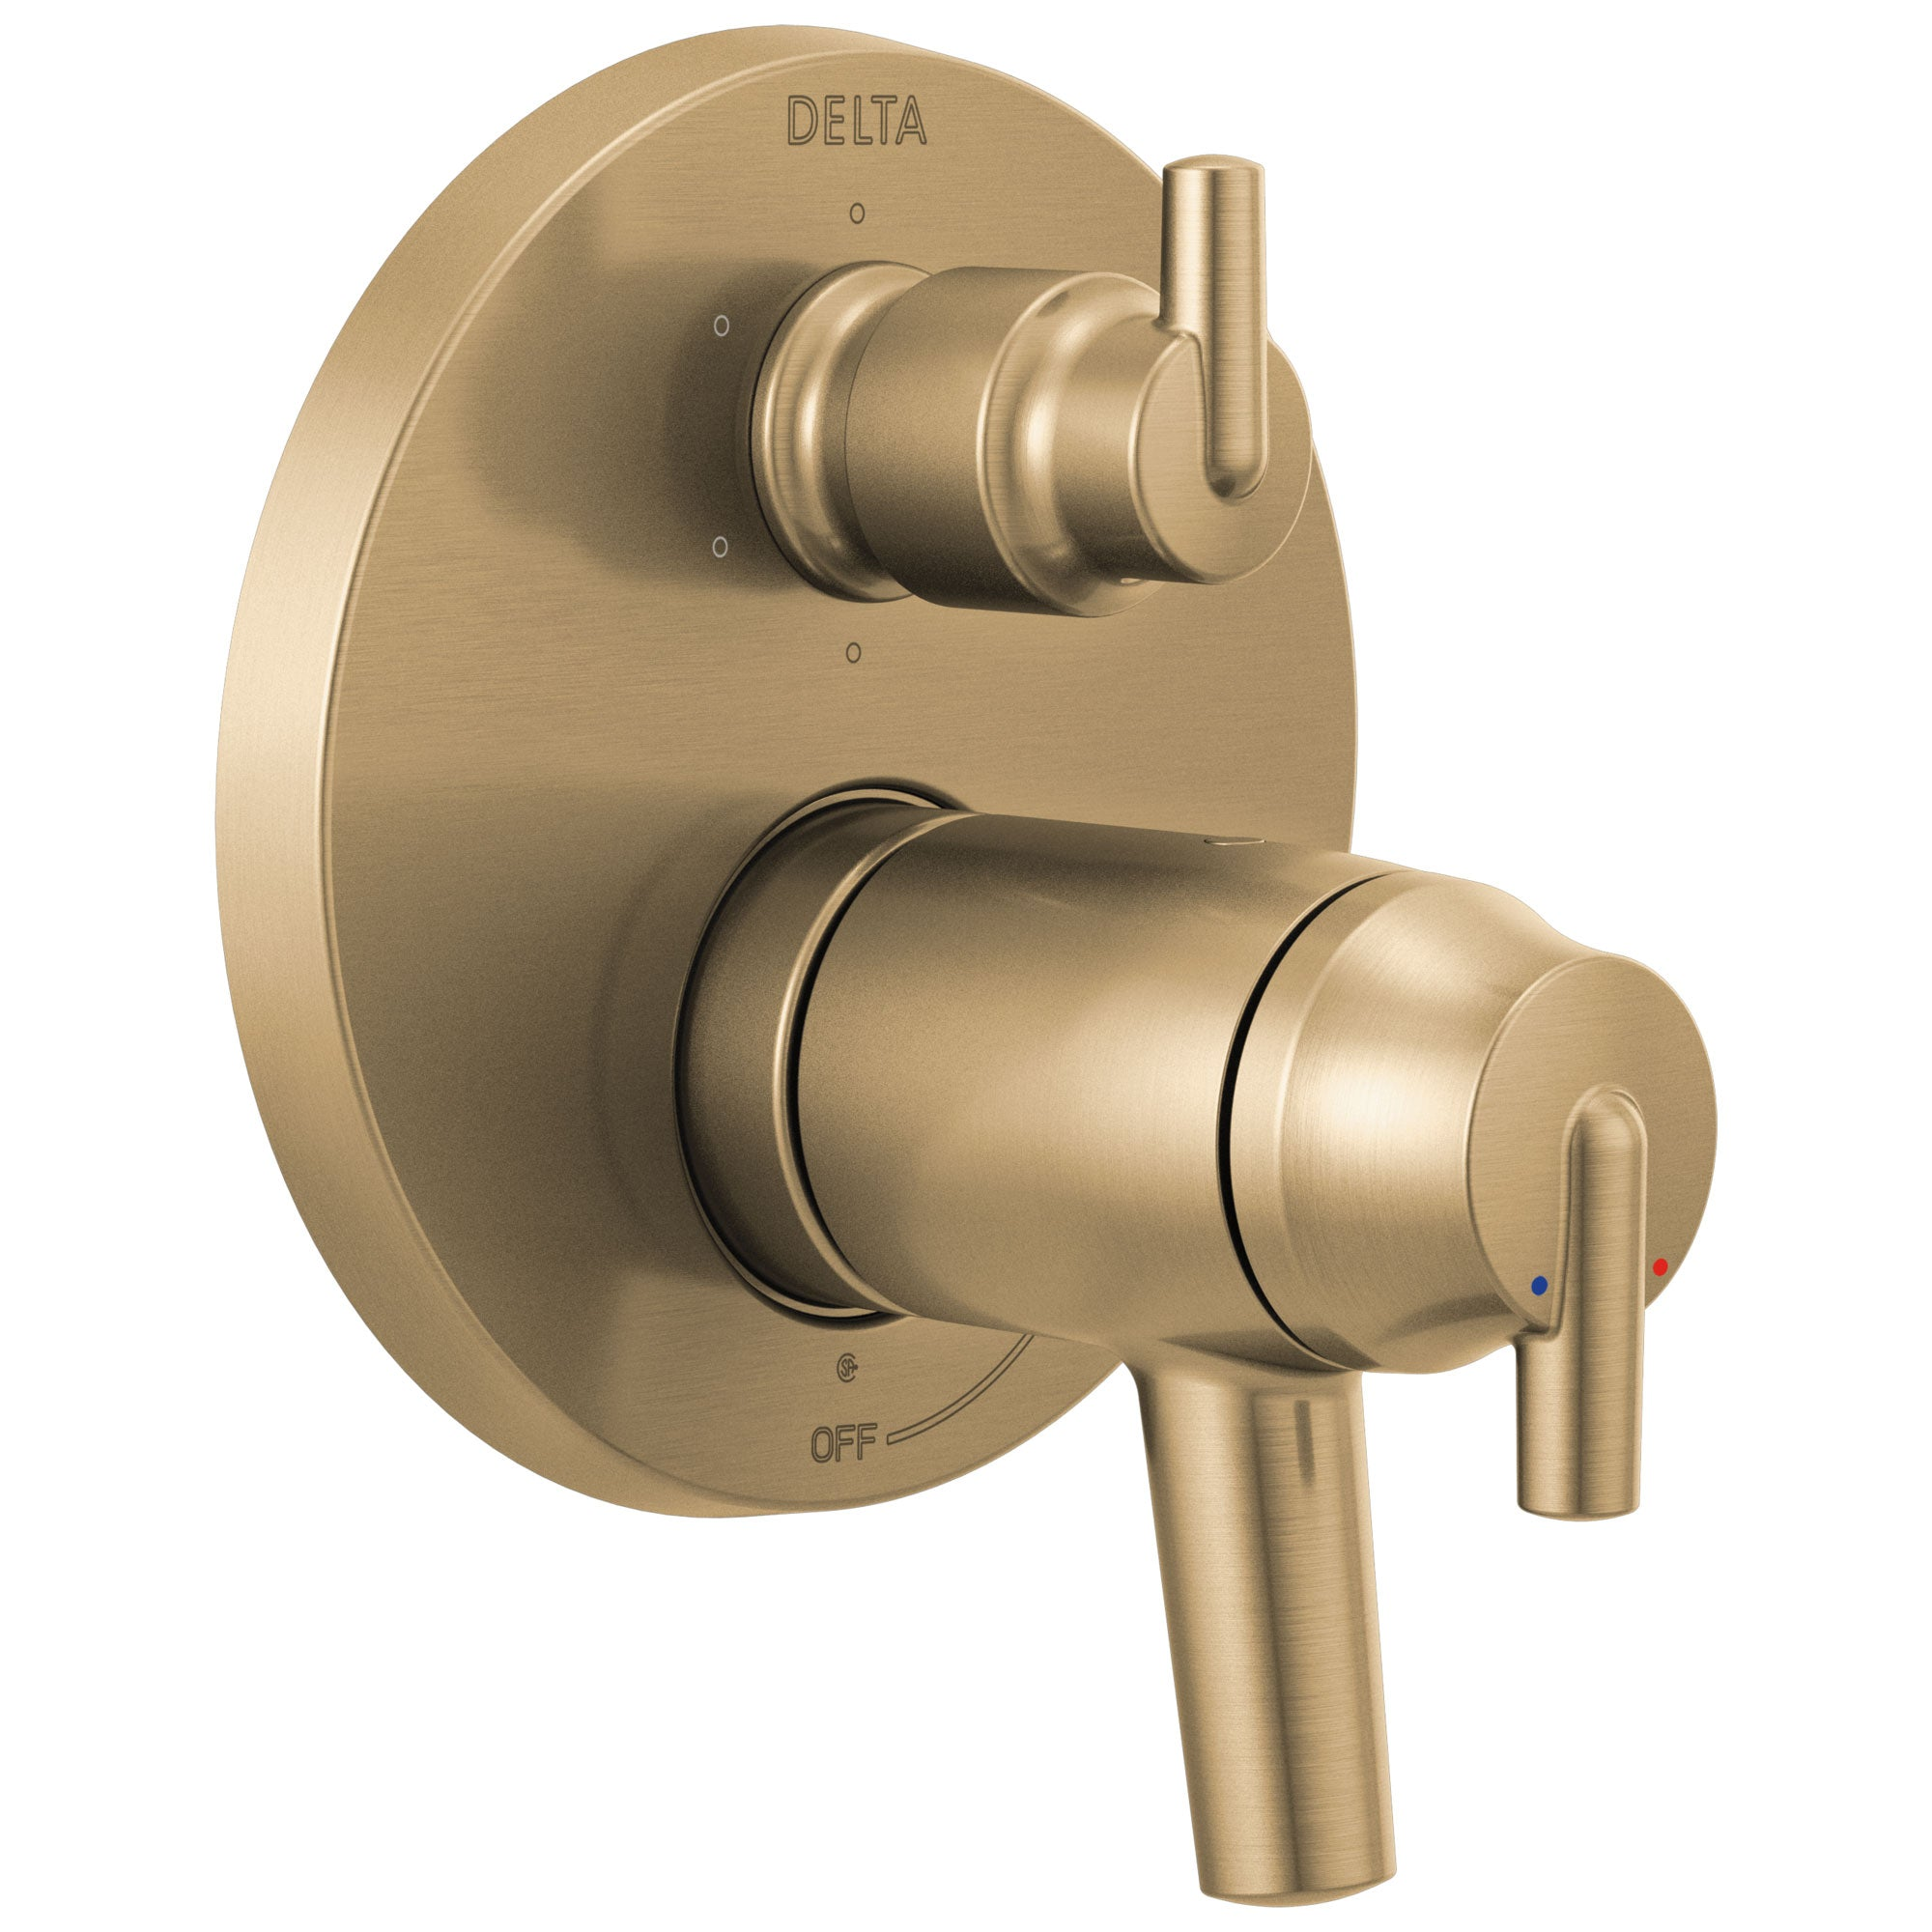 Delta Trinsic Champagne Bronze Contemporary Thermostatic Shower System Control with 6-Setting Integrated Diverter Includes Valve and Handles D3086V